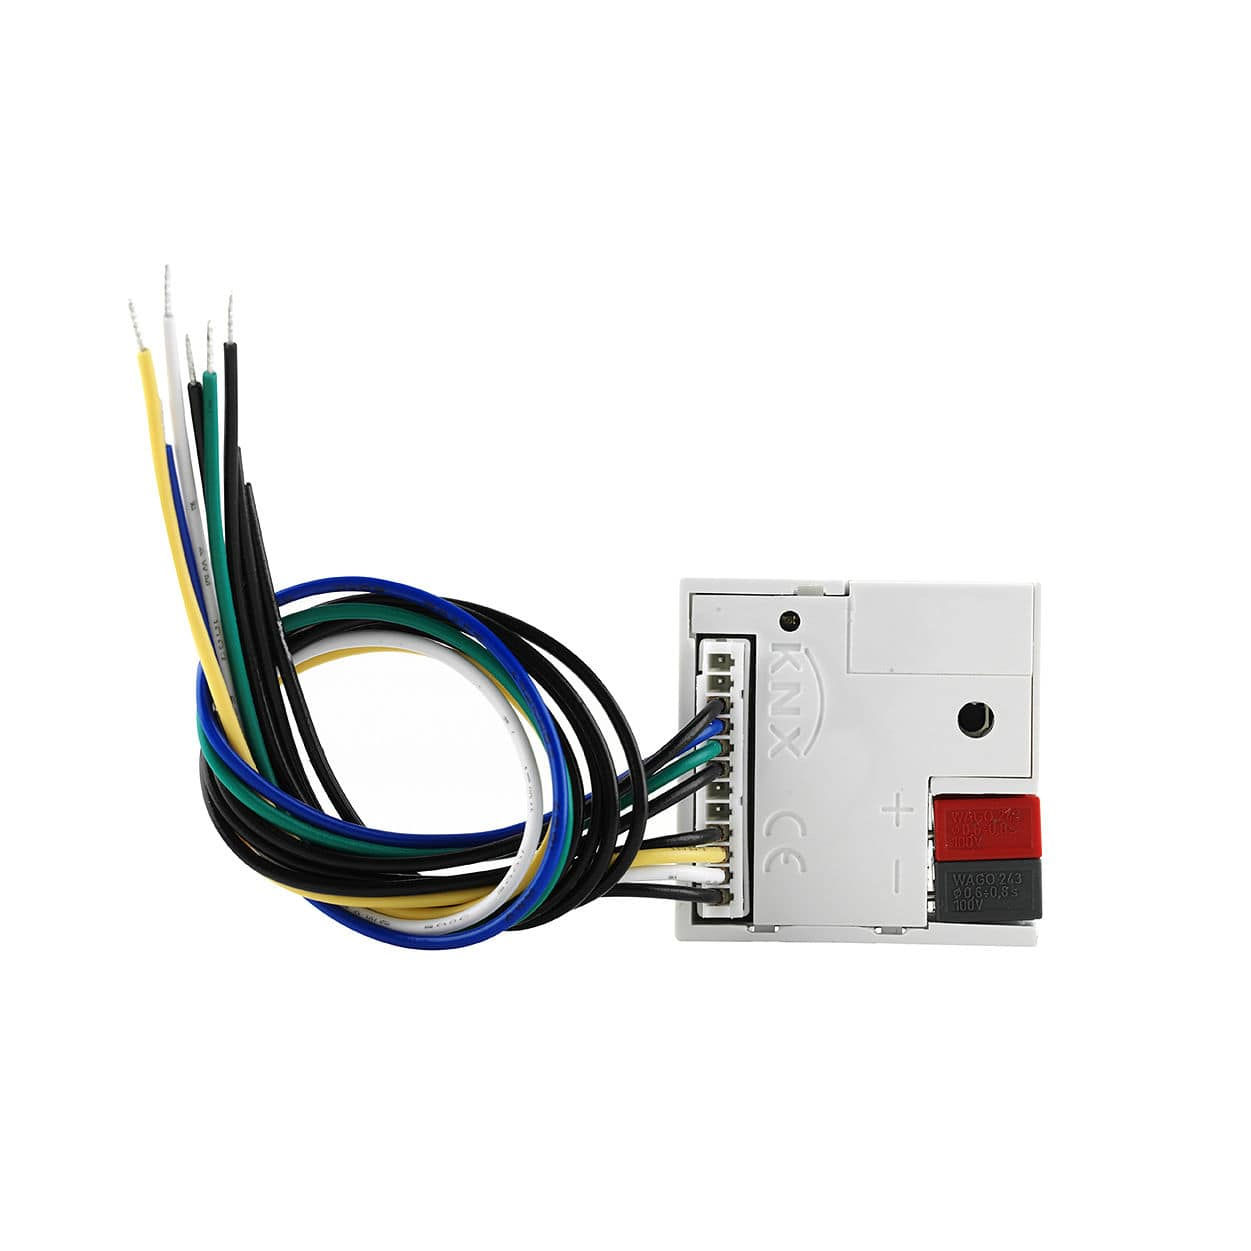 Knx Interface Module For Home Automation Systems Io22d01knx Wiring Required